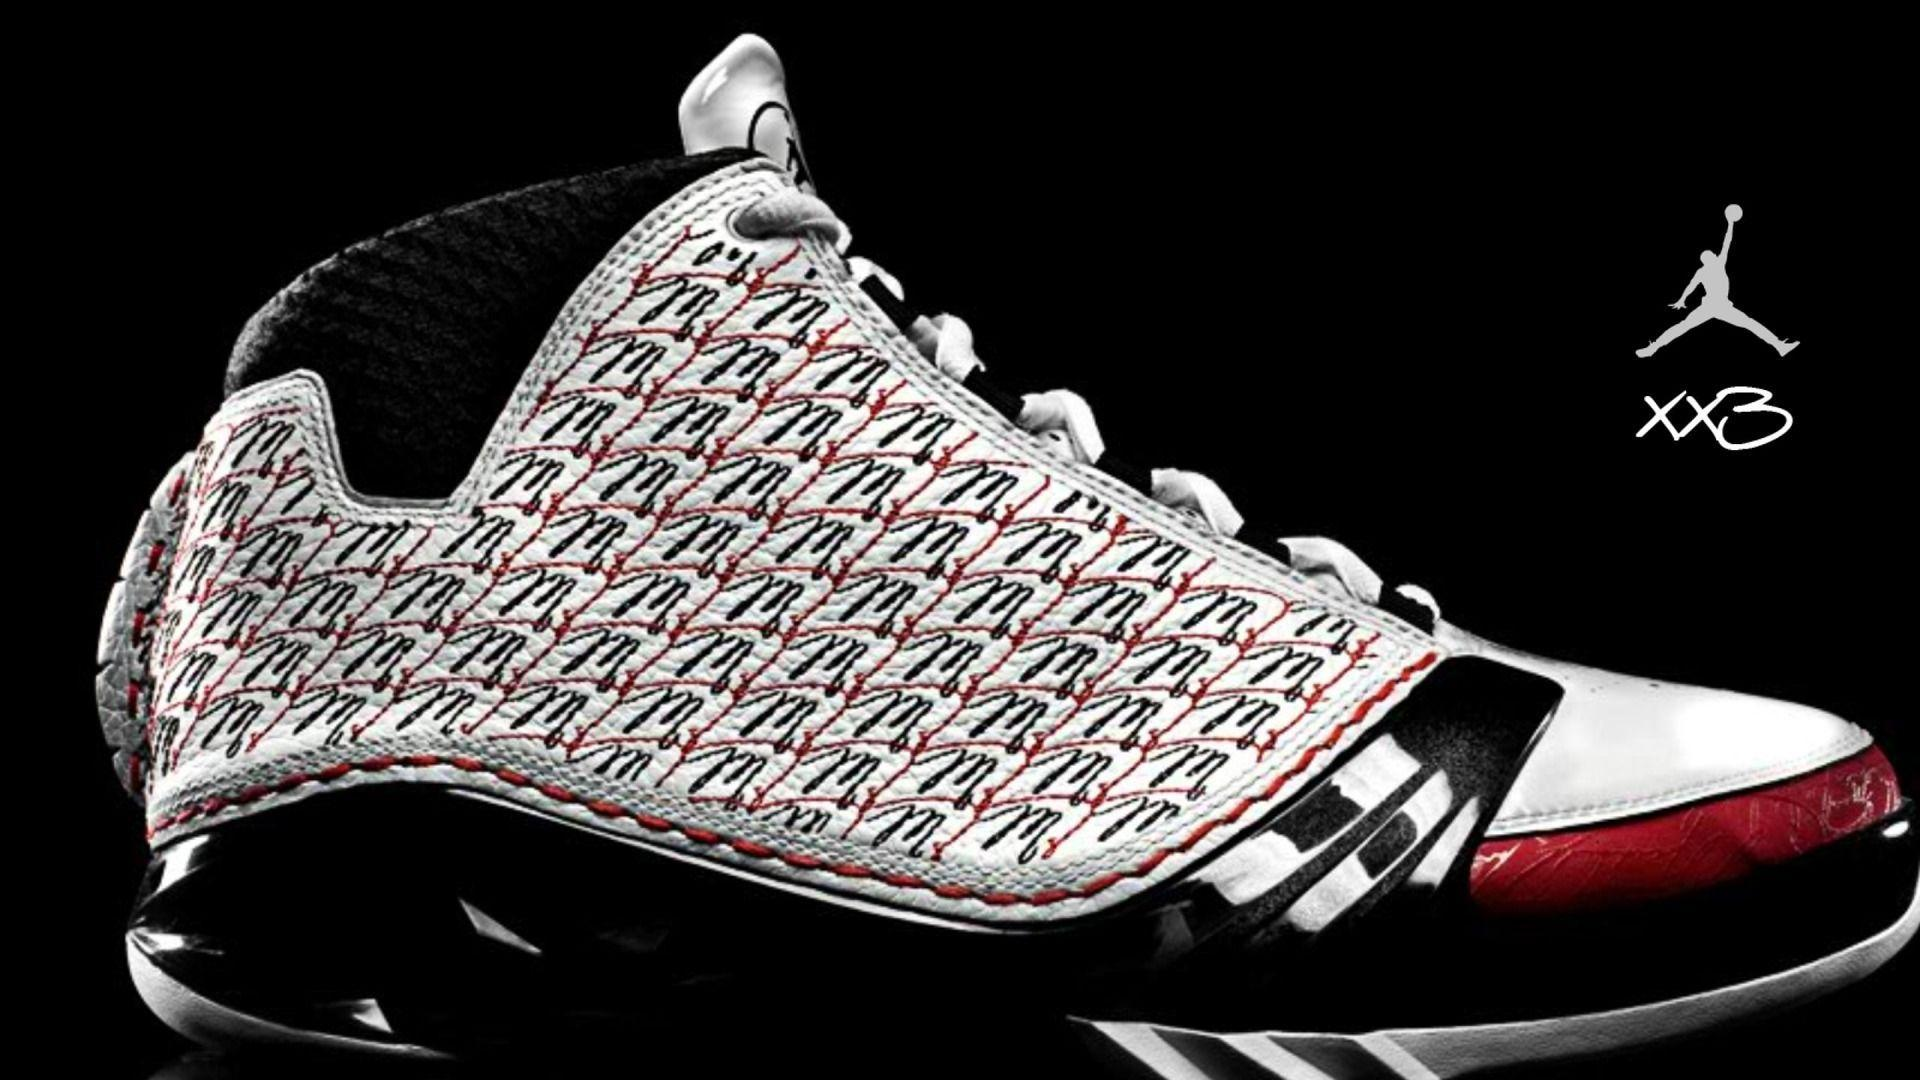 Download Free Air Jordan Shoes Wallpapers | HD Wallpapers ...